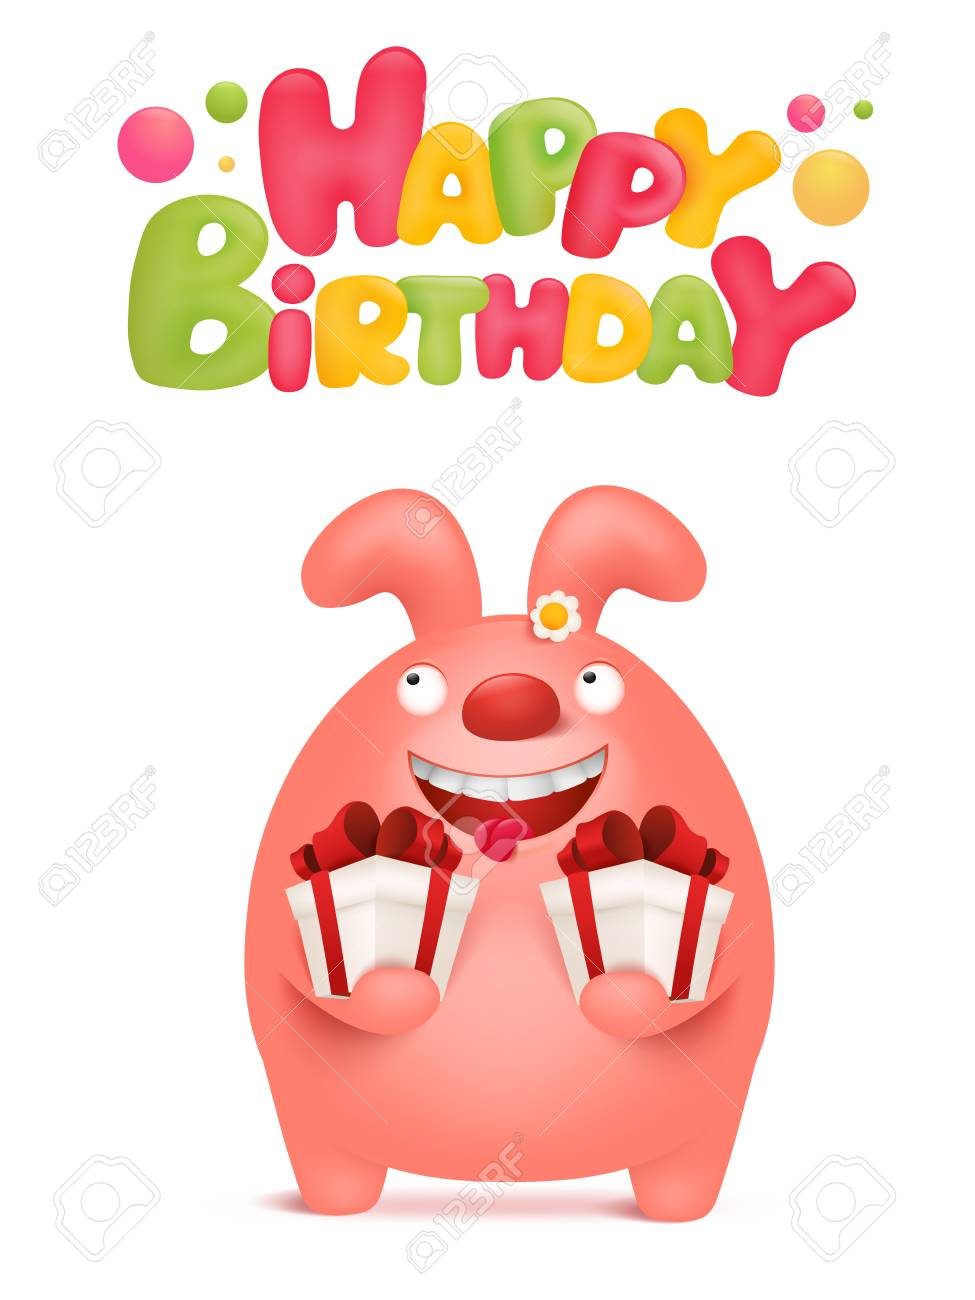 Happy Birthday Card Template With Pink Bunny Cartoon Character Vector Illustration Stock